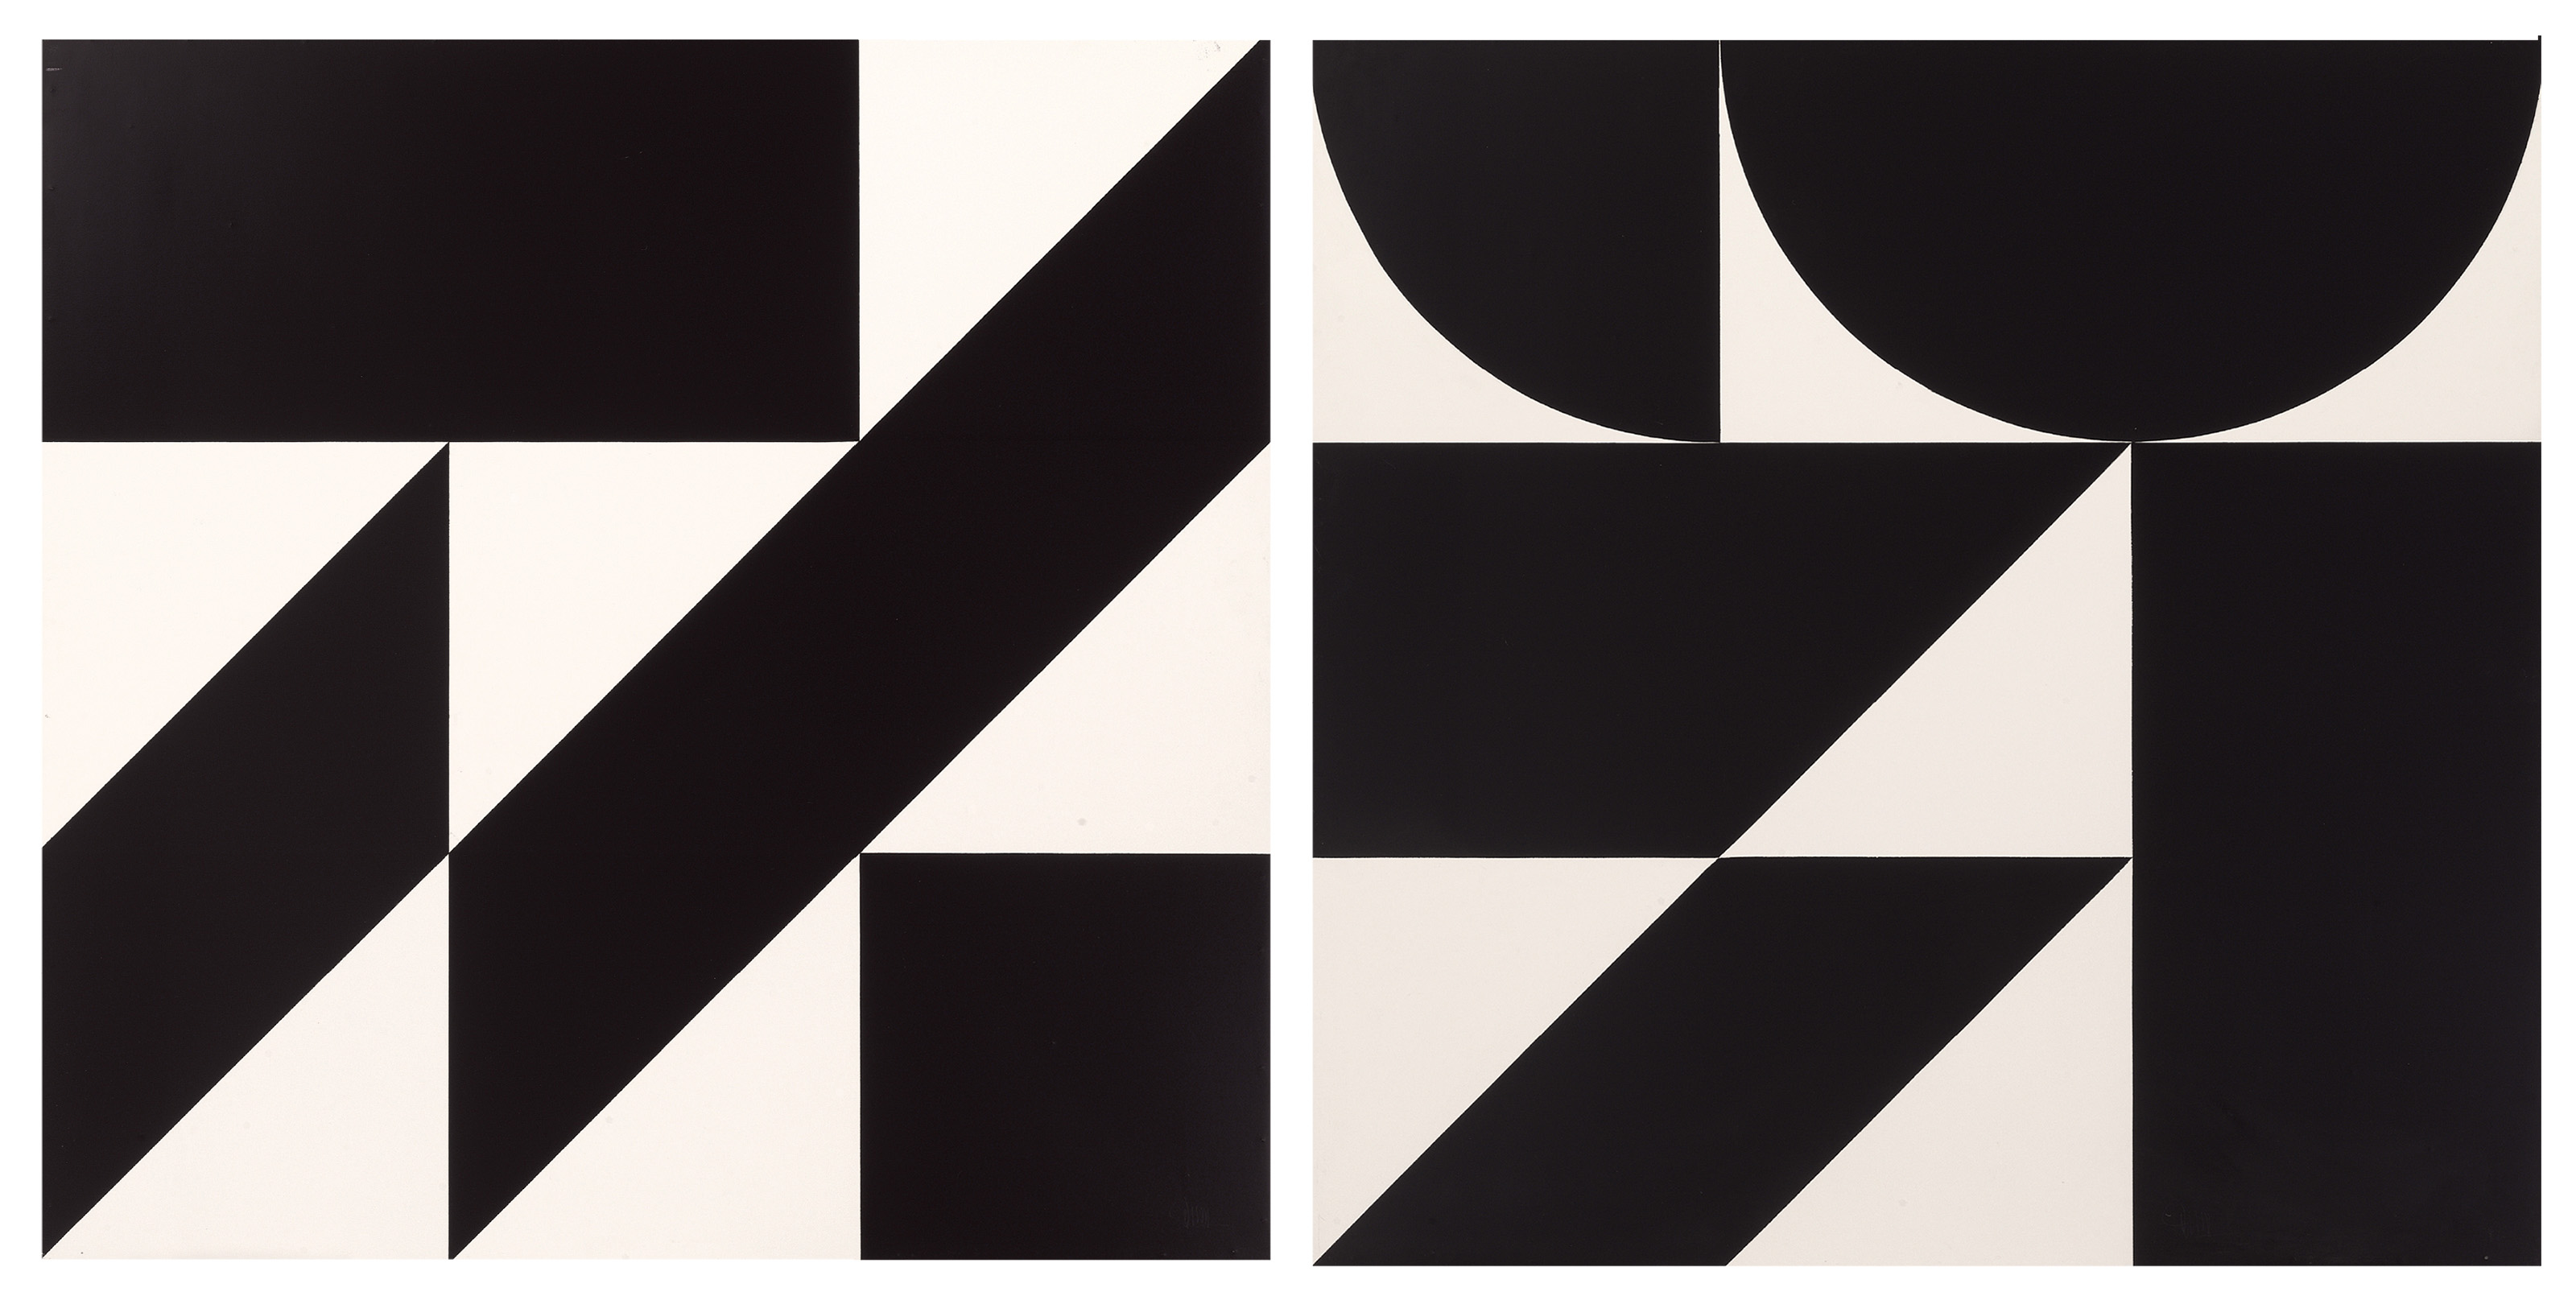 Black Forms On White Space